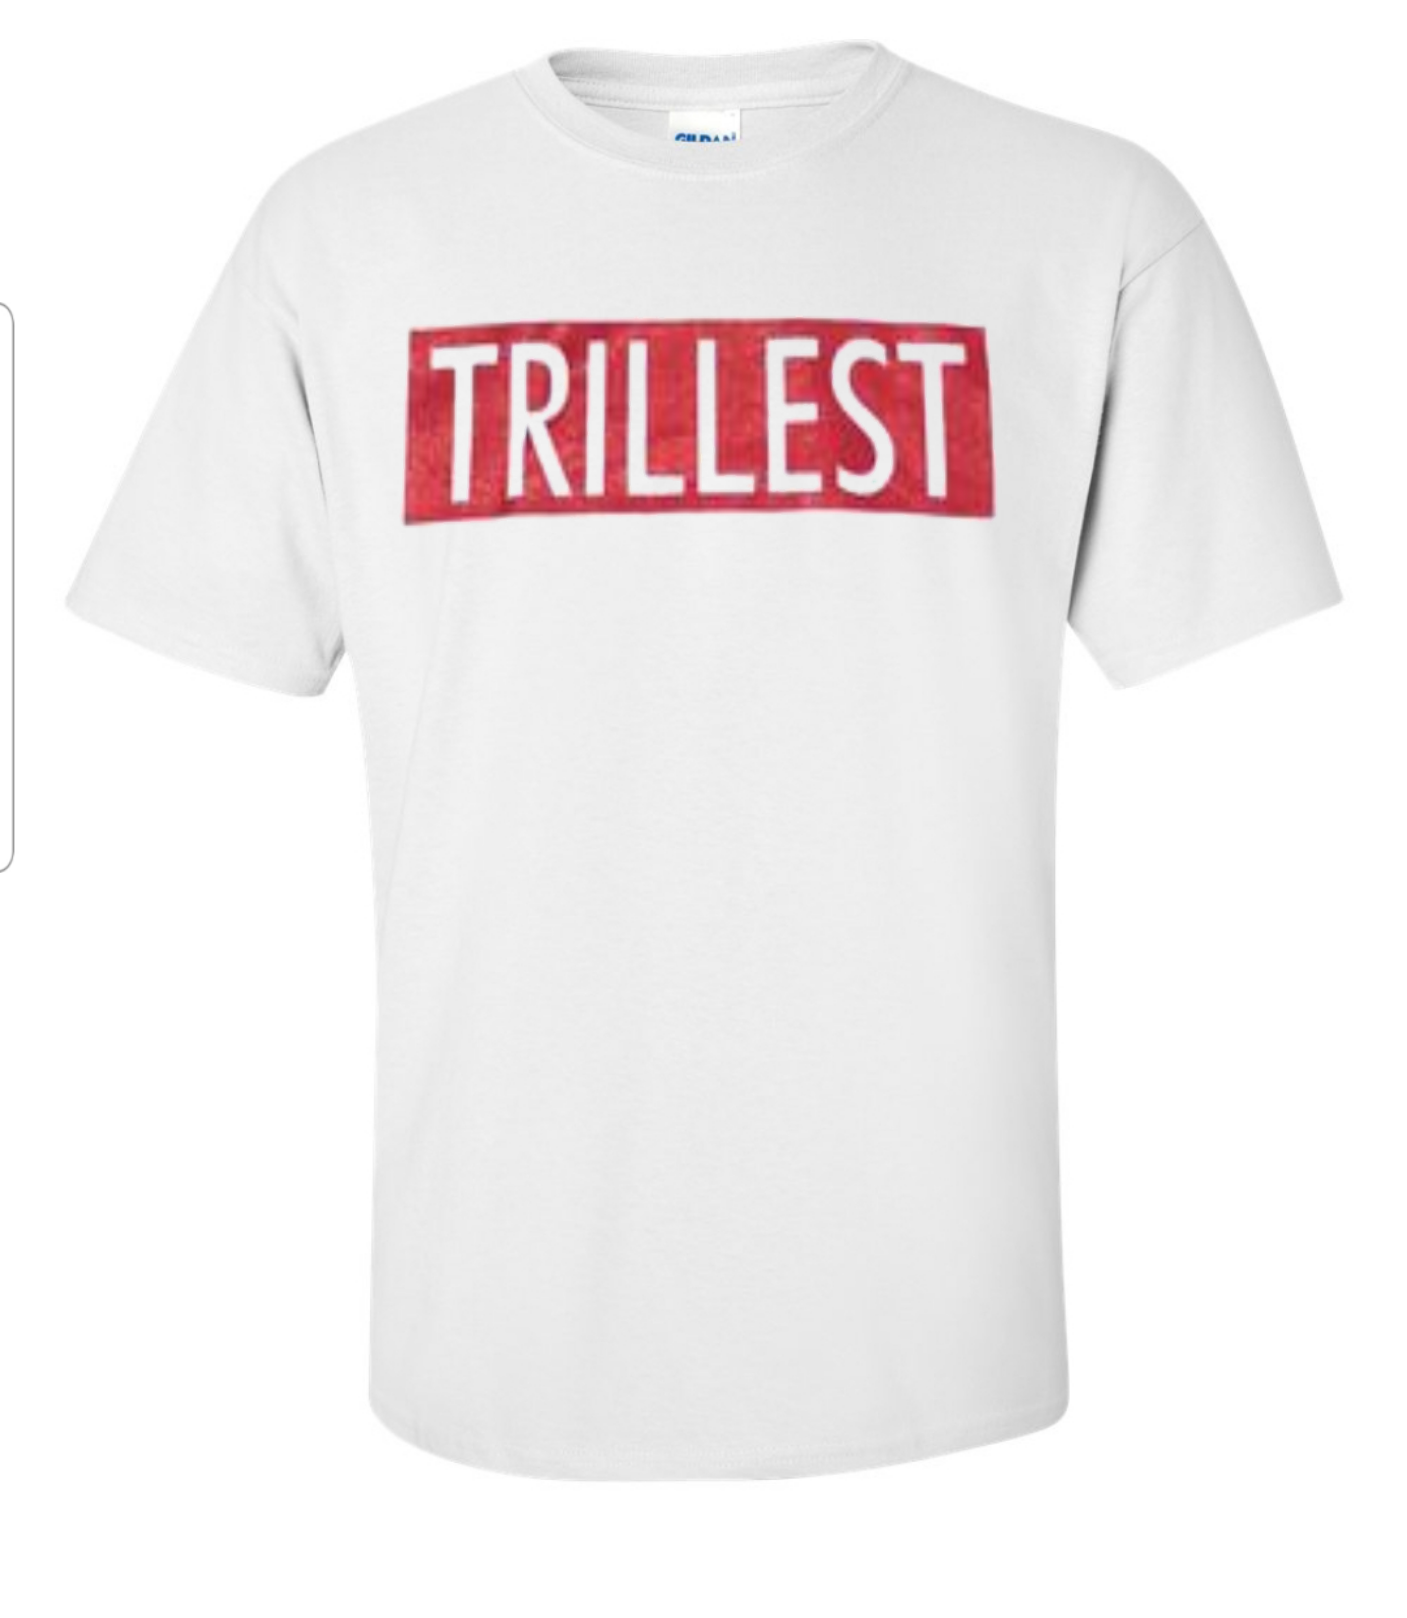 White Pimp C Trillest T-shirt with the word trillest in the red block